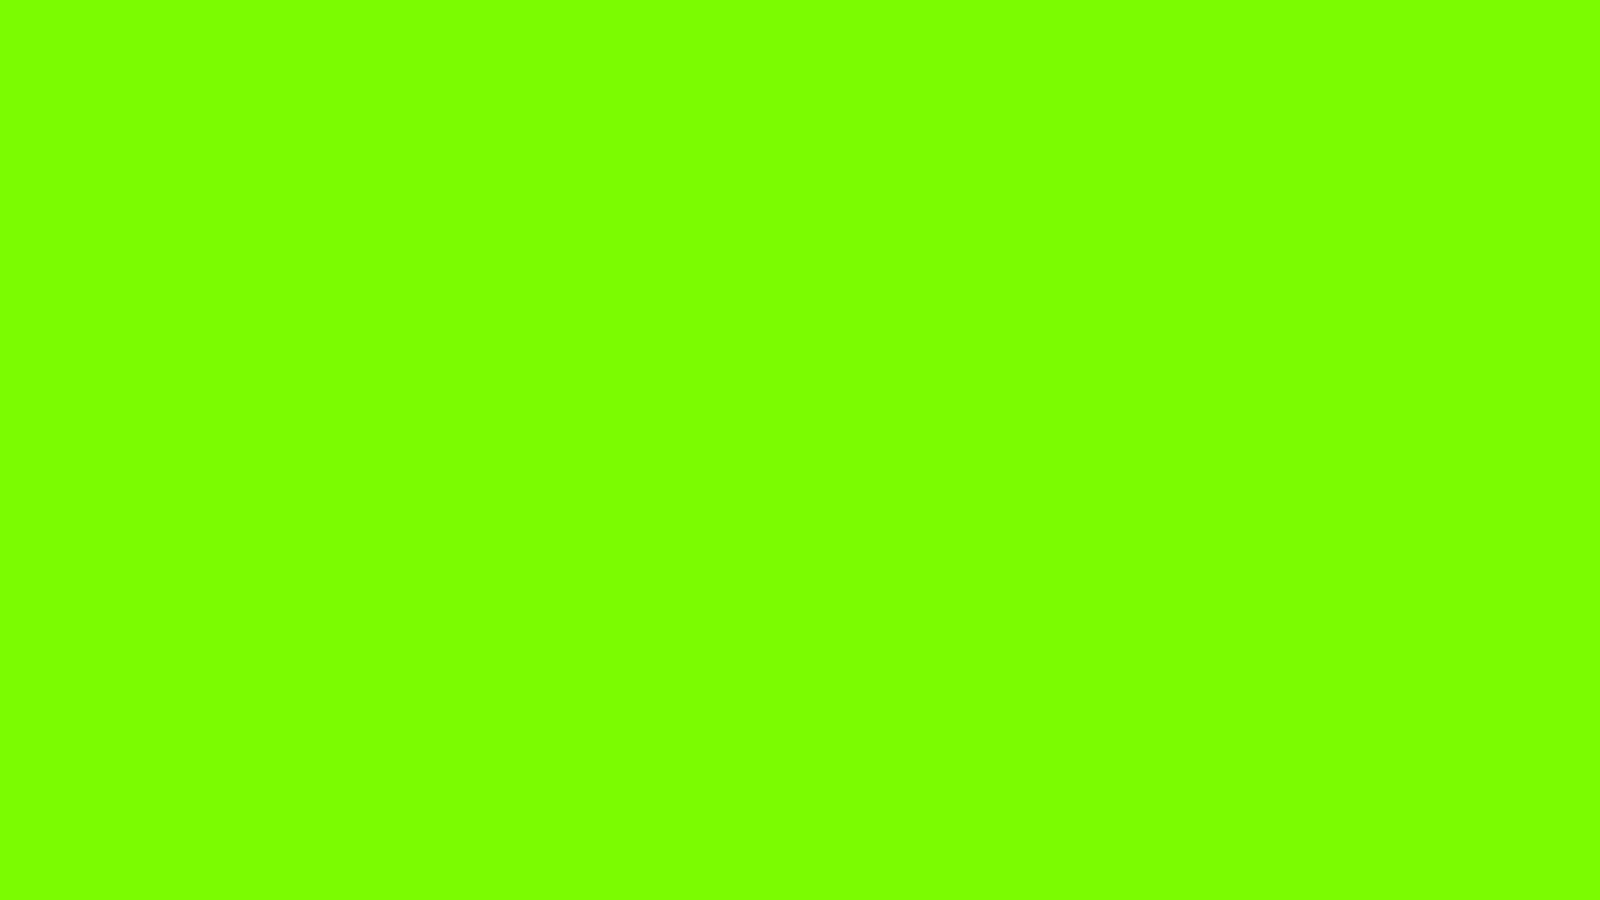 1600x900 Lawn Green Solid Color Background